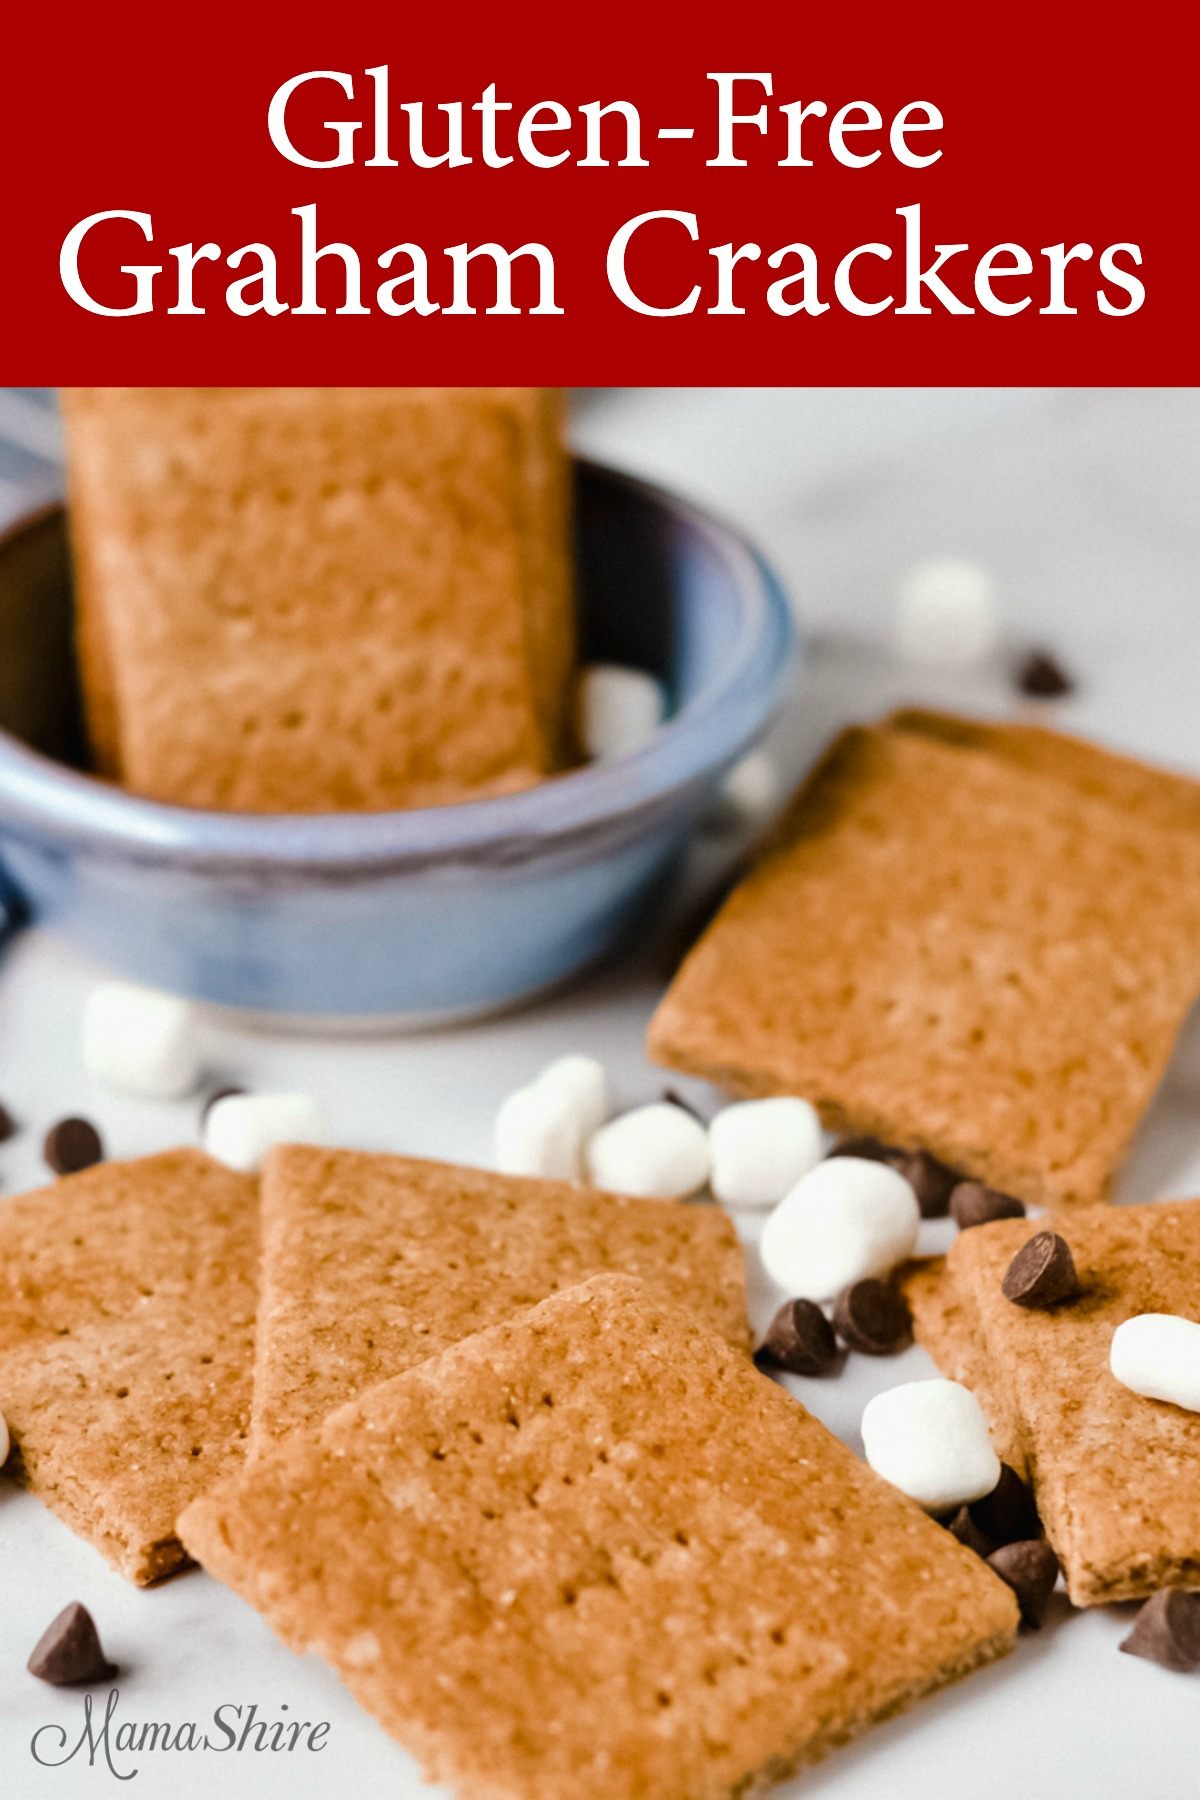 Graham crackers, mini marshmallows, dairy-free chocolate chips all scattered on a marble background. Crackers made with a homemade gluten-free graham cracker recipe.